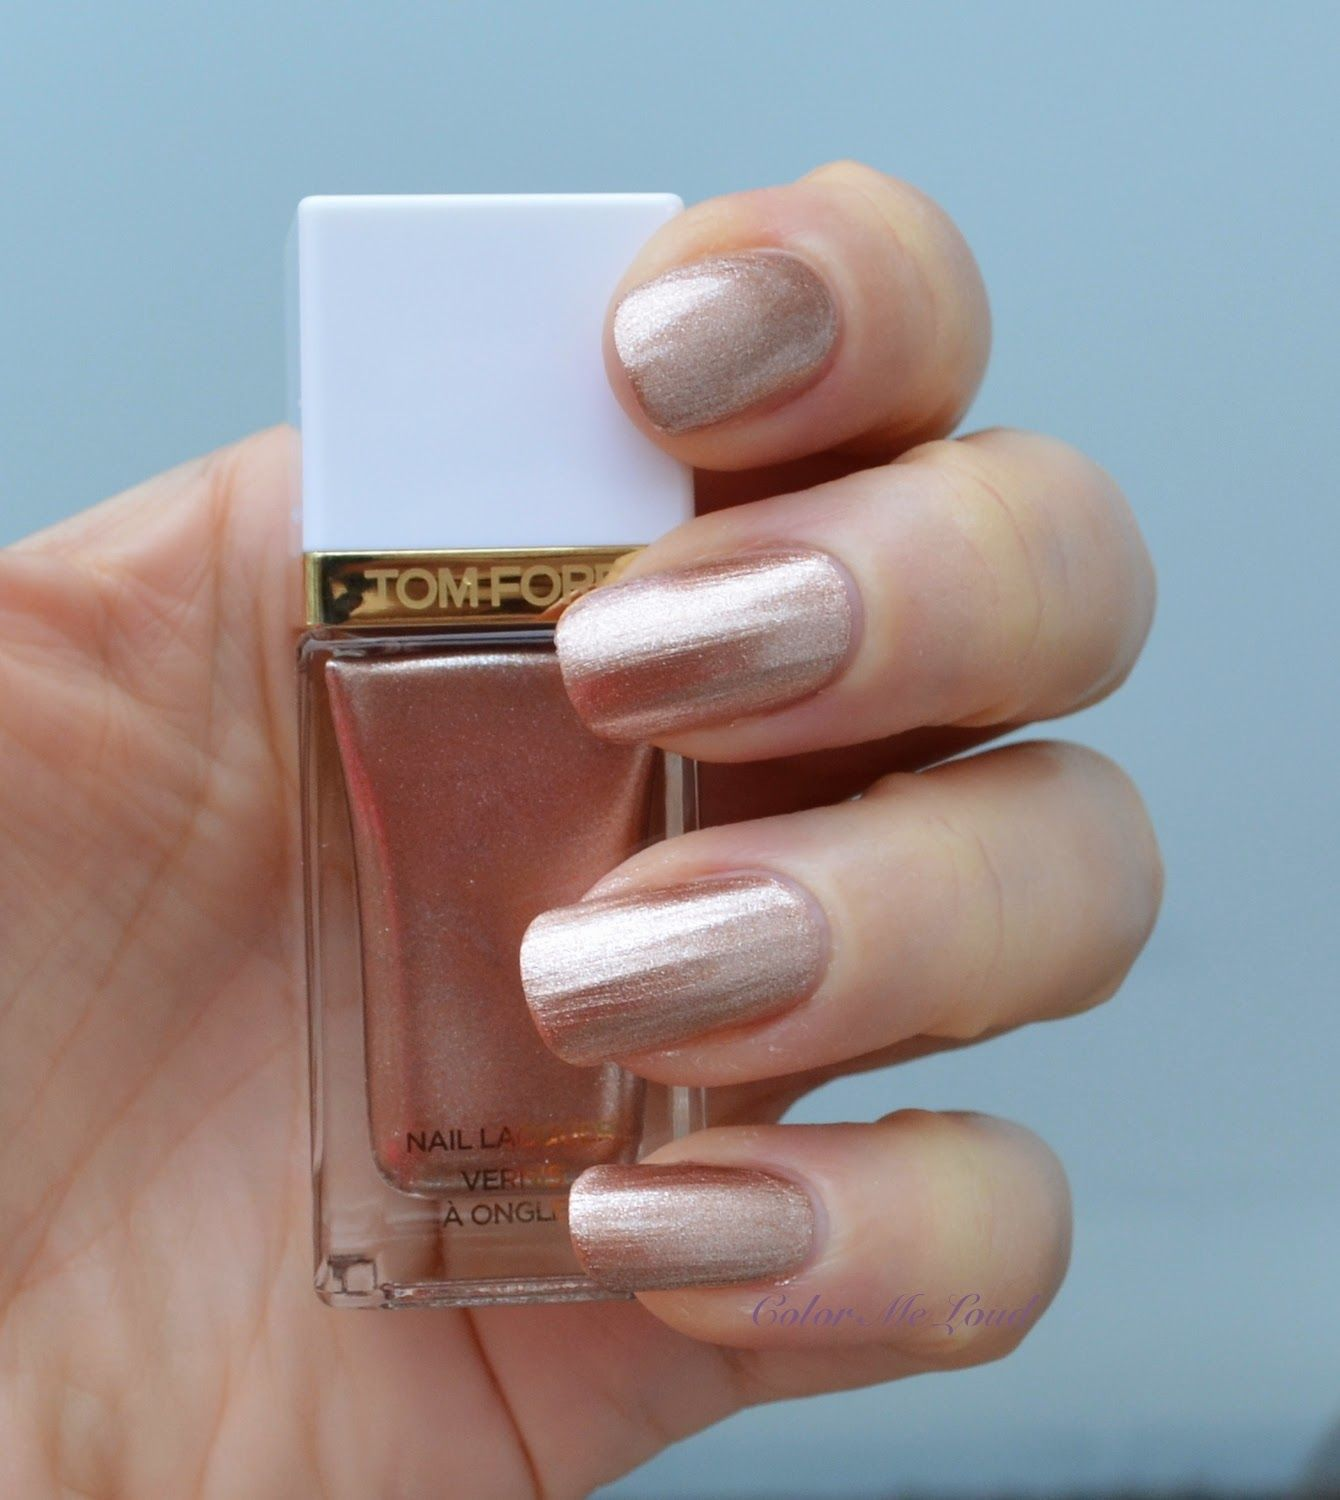 Tom Ford #02 Incandescent - rose gold #nail polish / lacquer ...